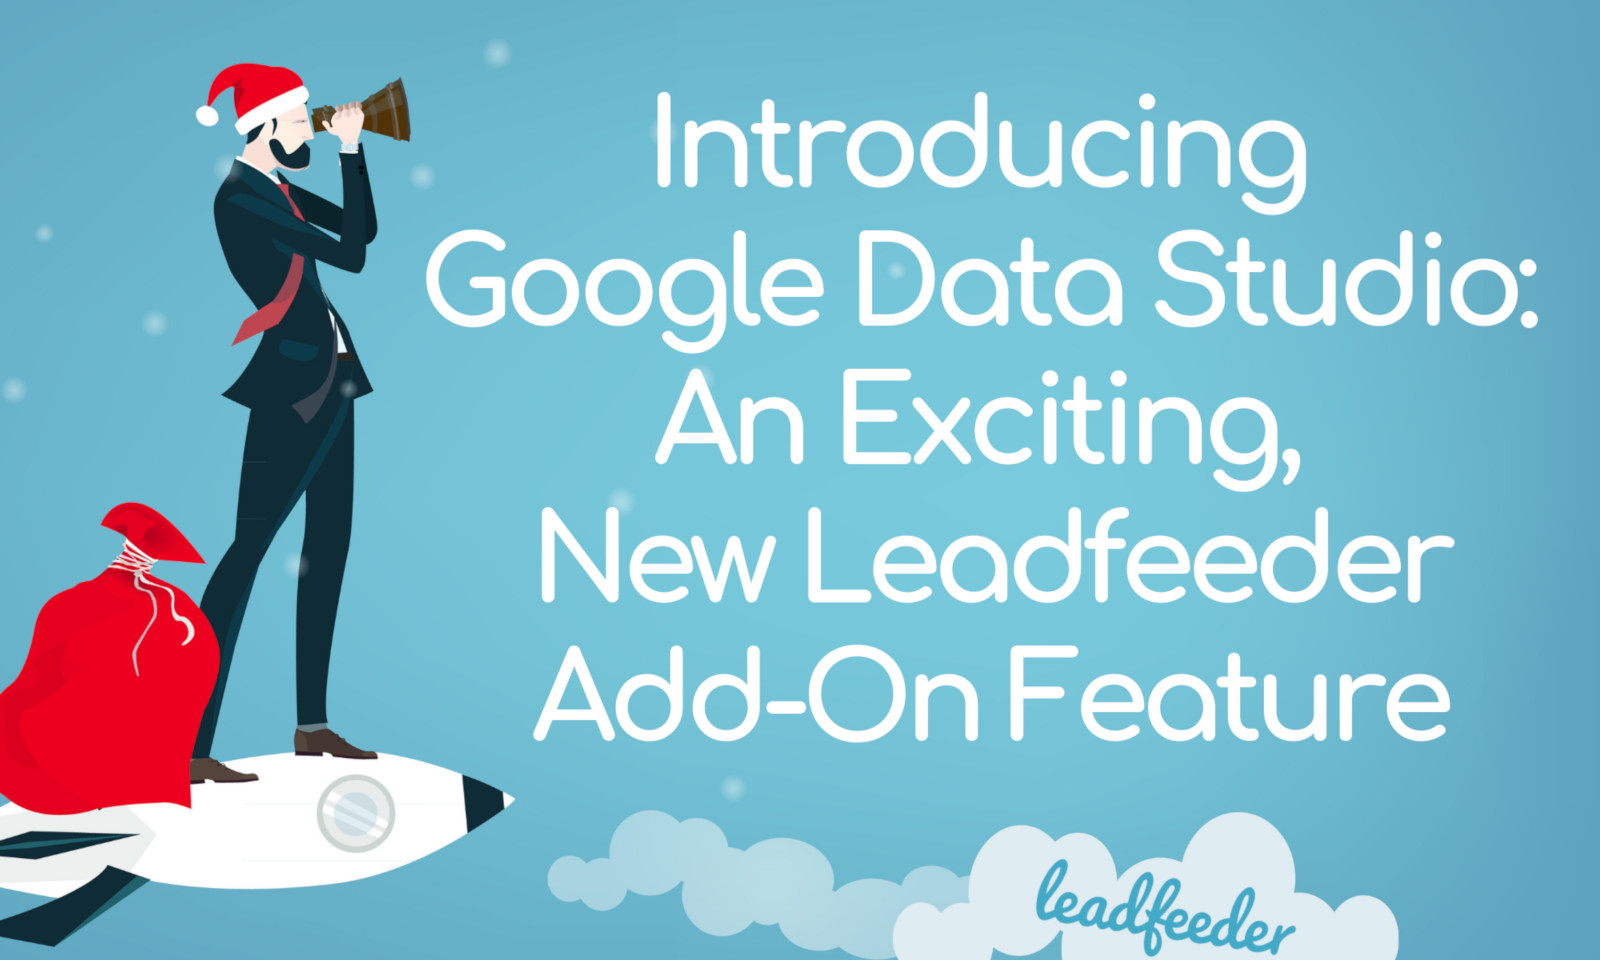 Introducing Google Data Studio: An Exciting New Leadfeeder Add-On Feature Launch!